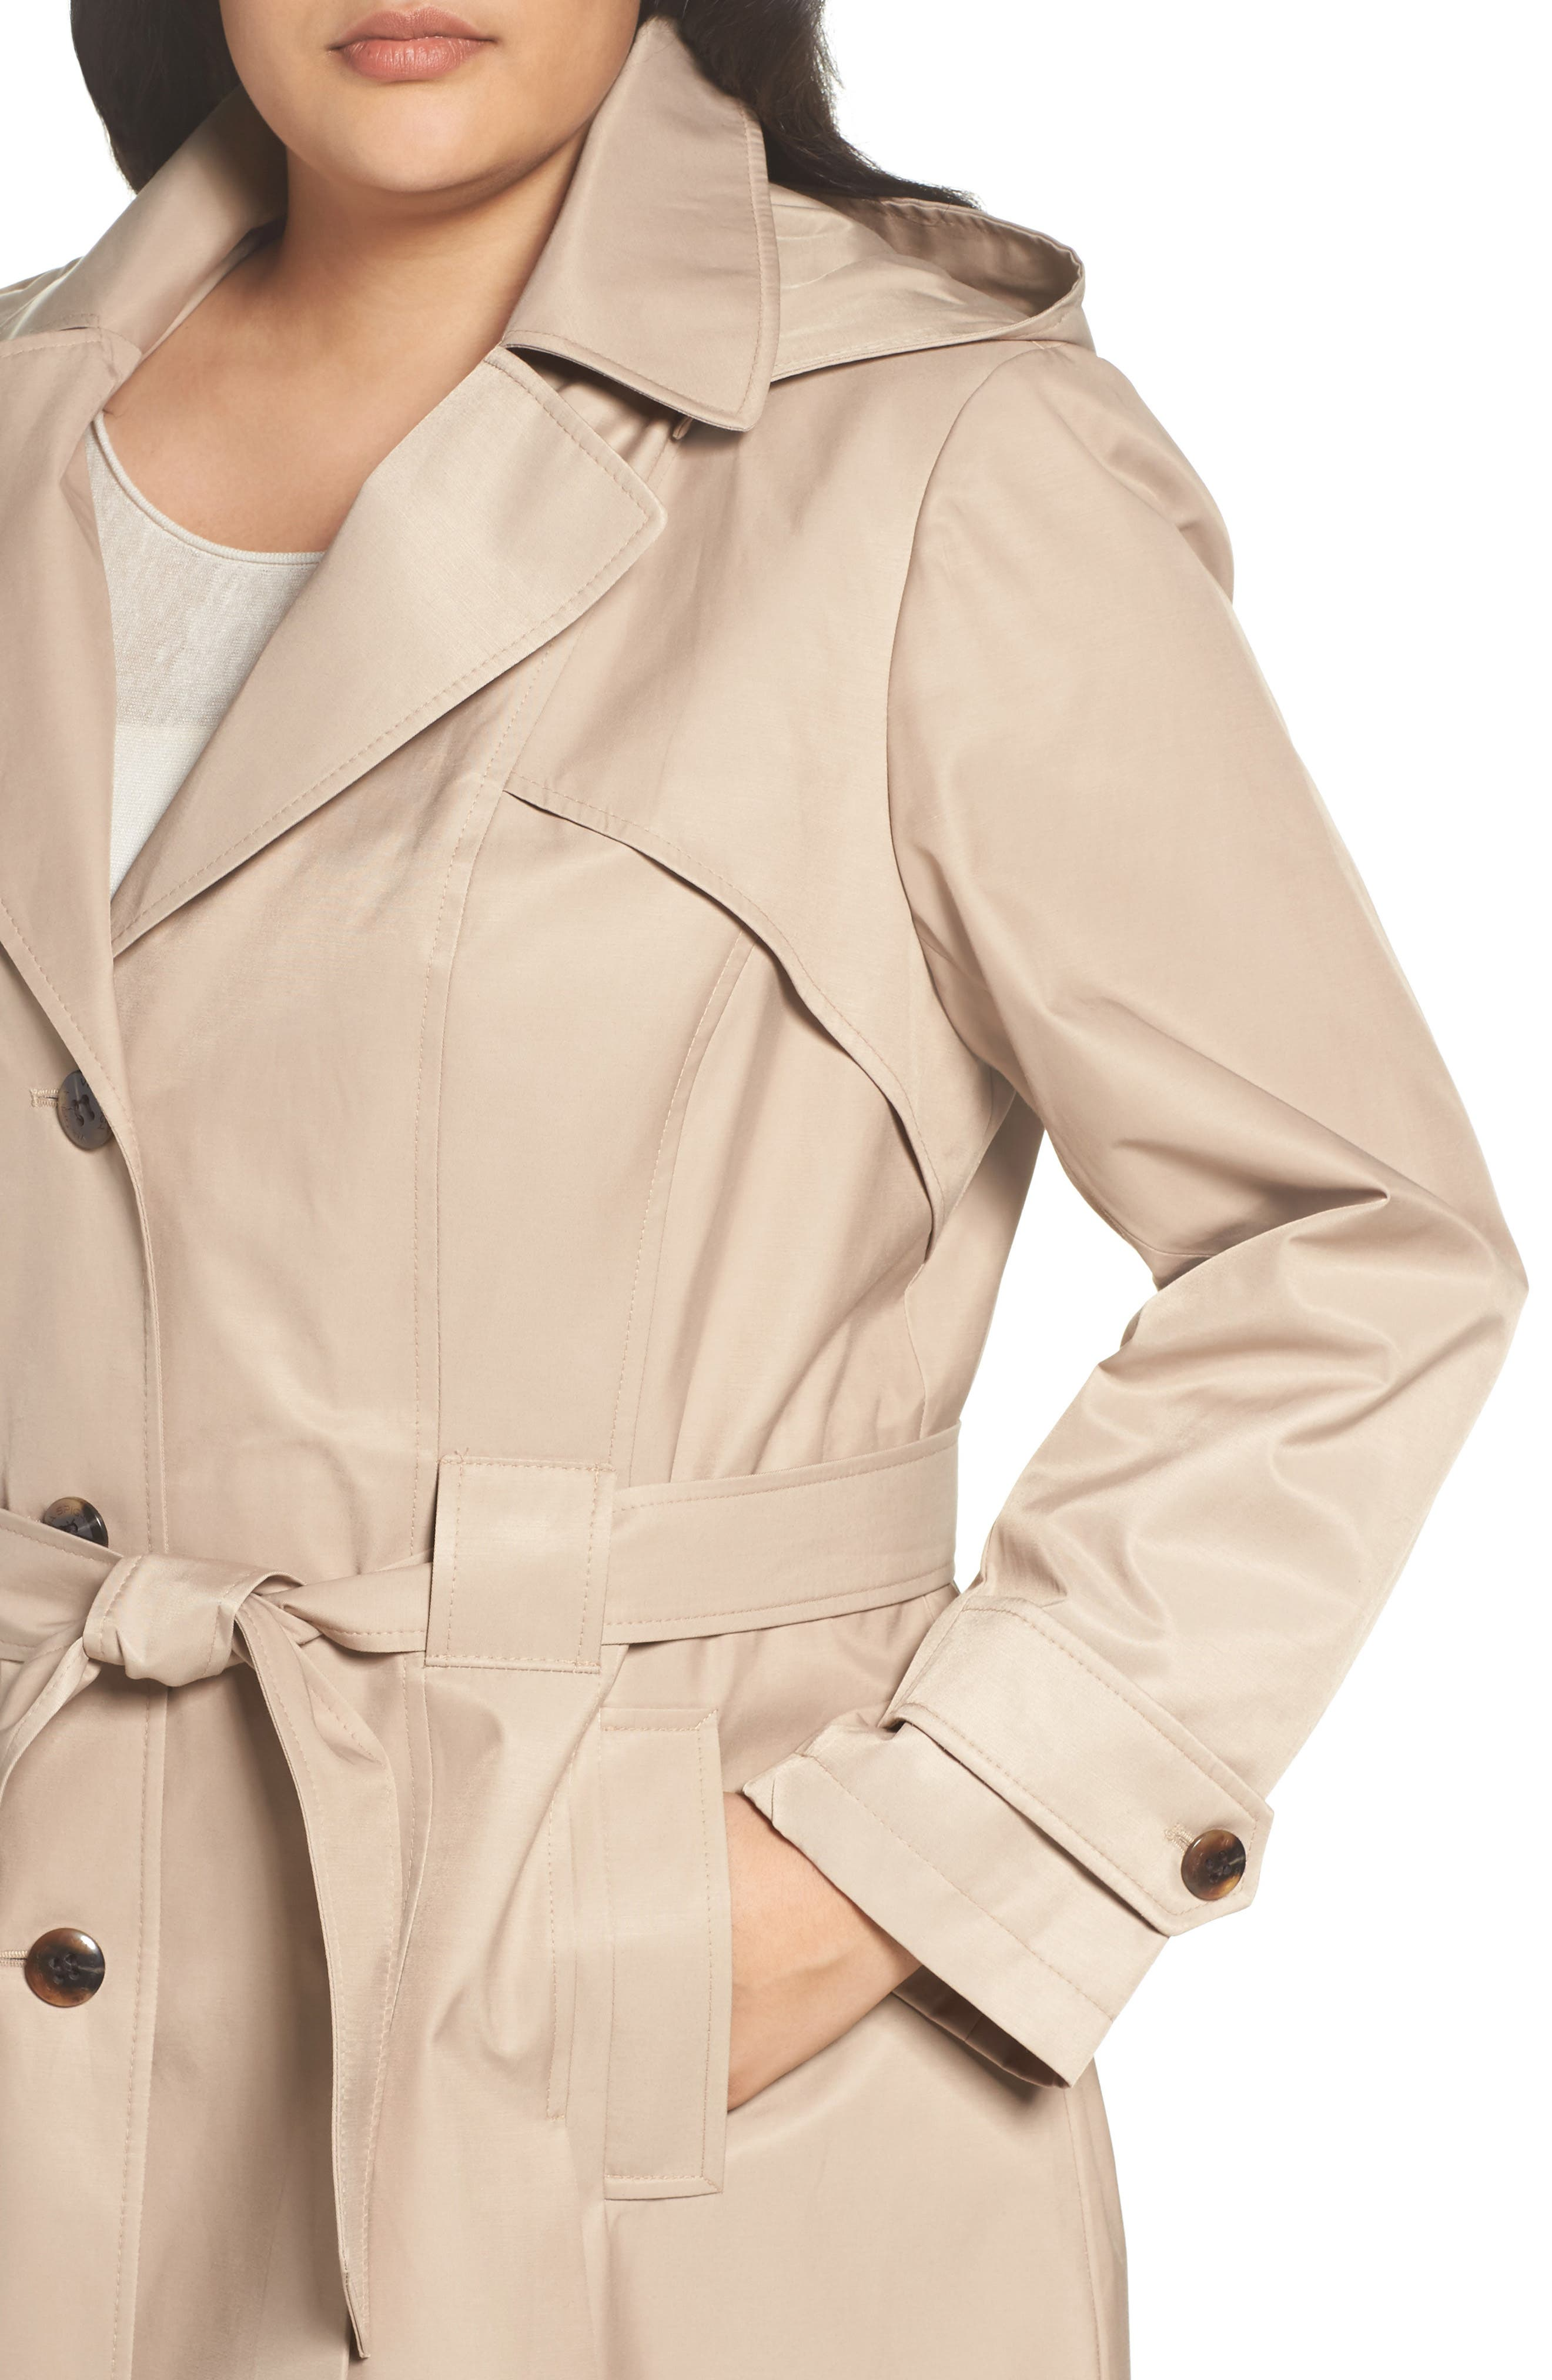 'Scarpa' Single Breasted Trench Coat,                             Alternate thumbnail 21, color,